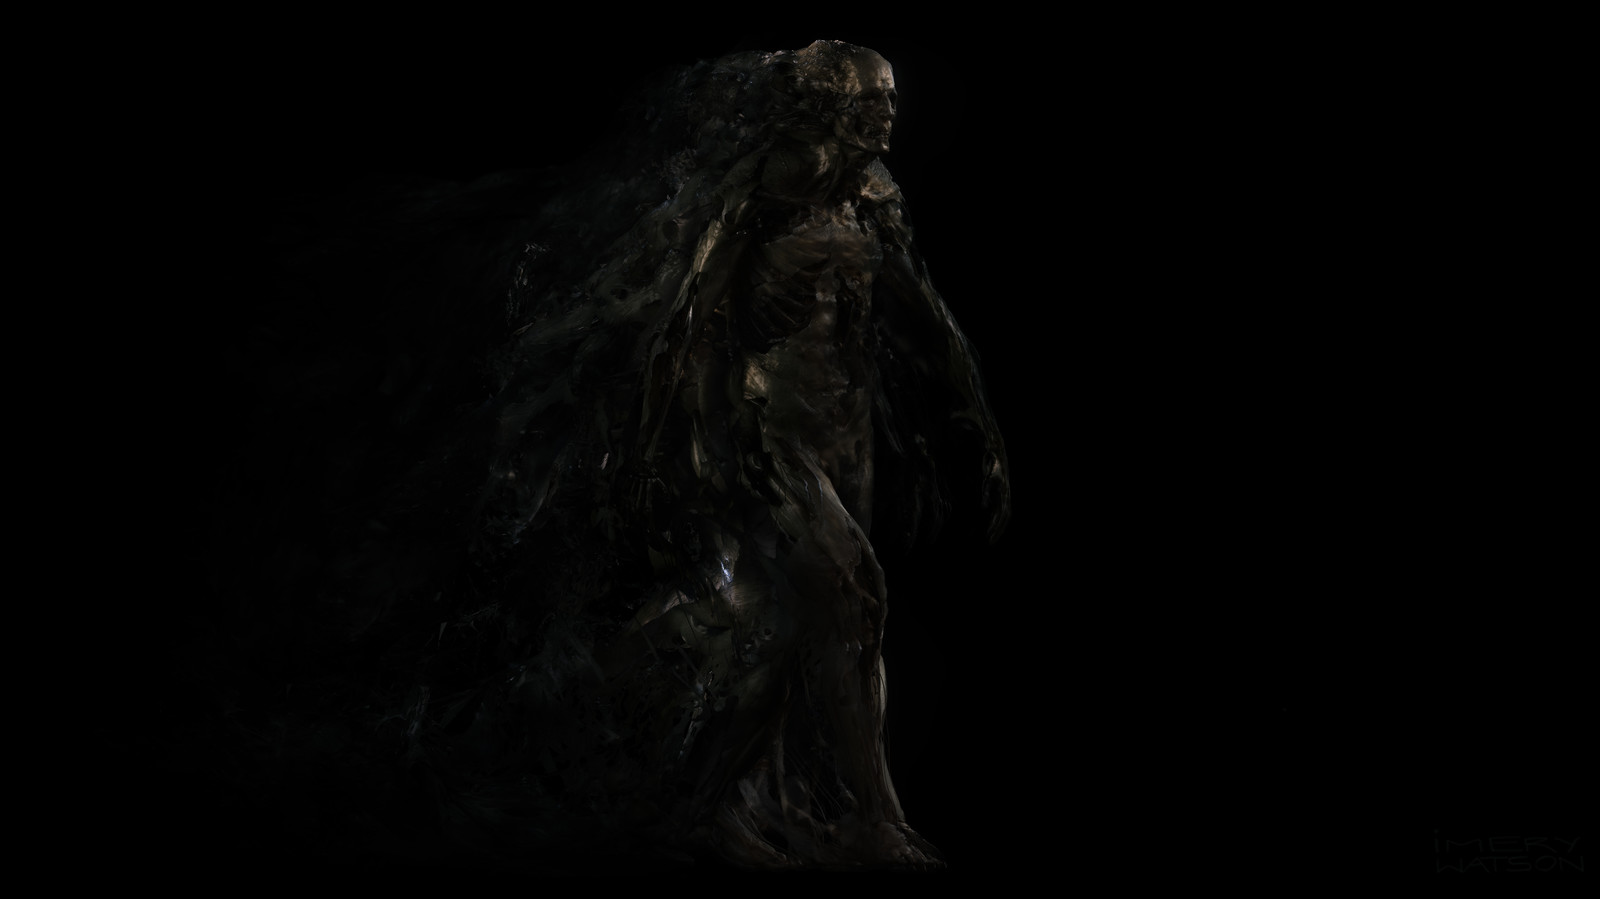 Spectral - creature/look development